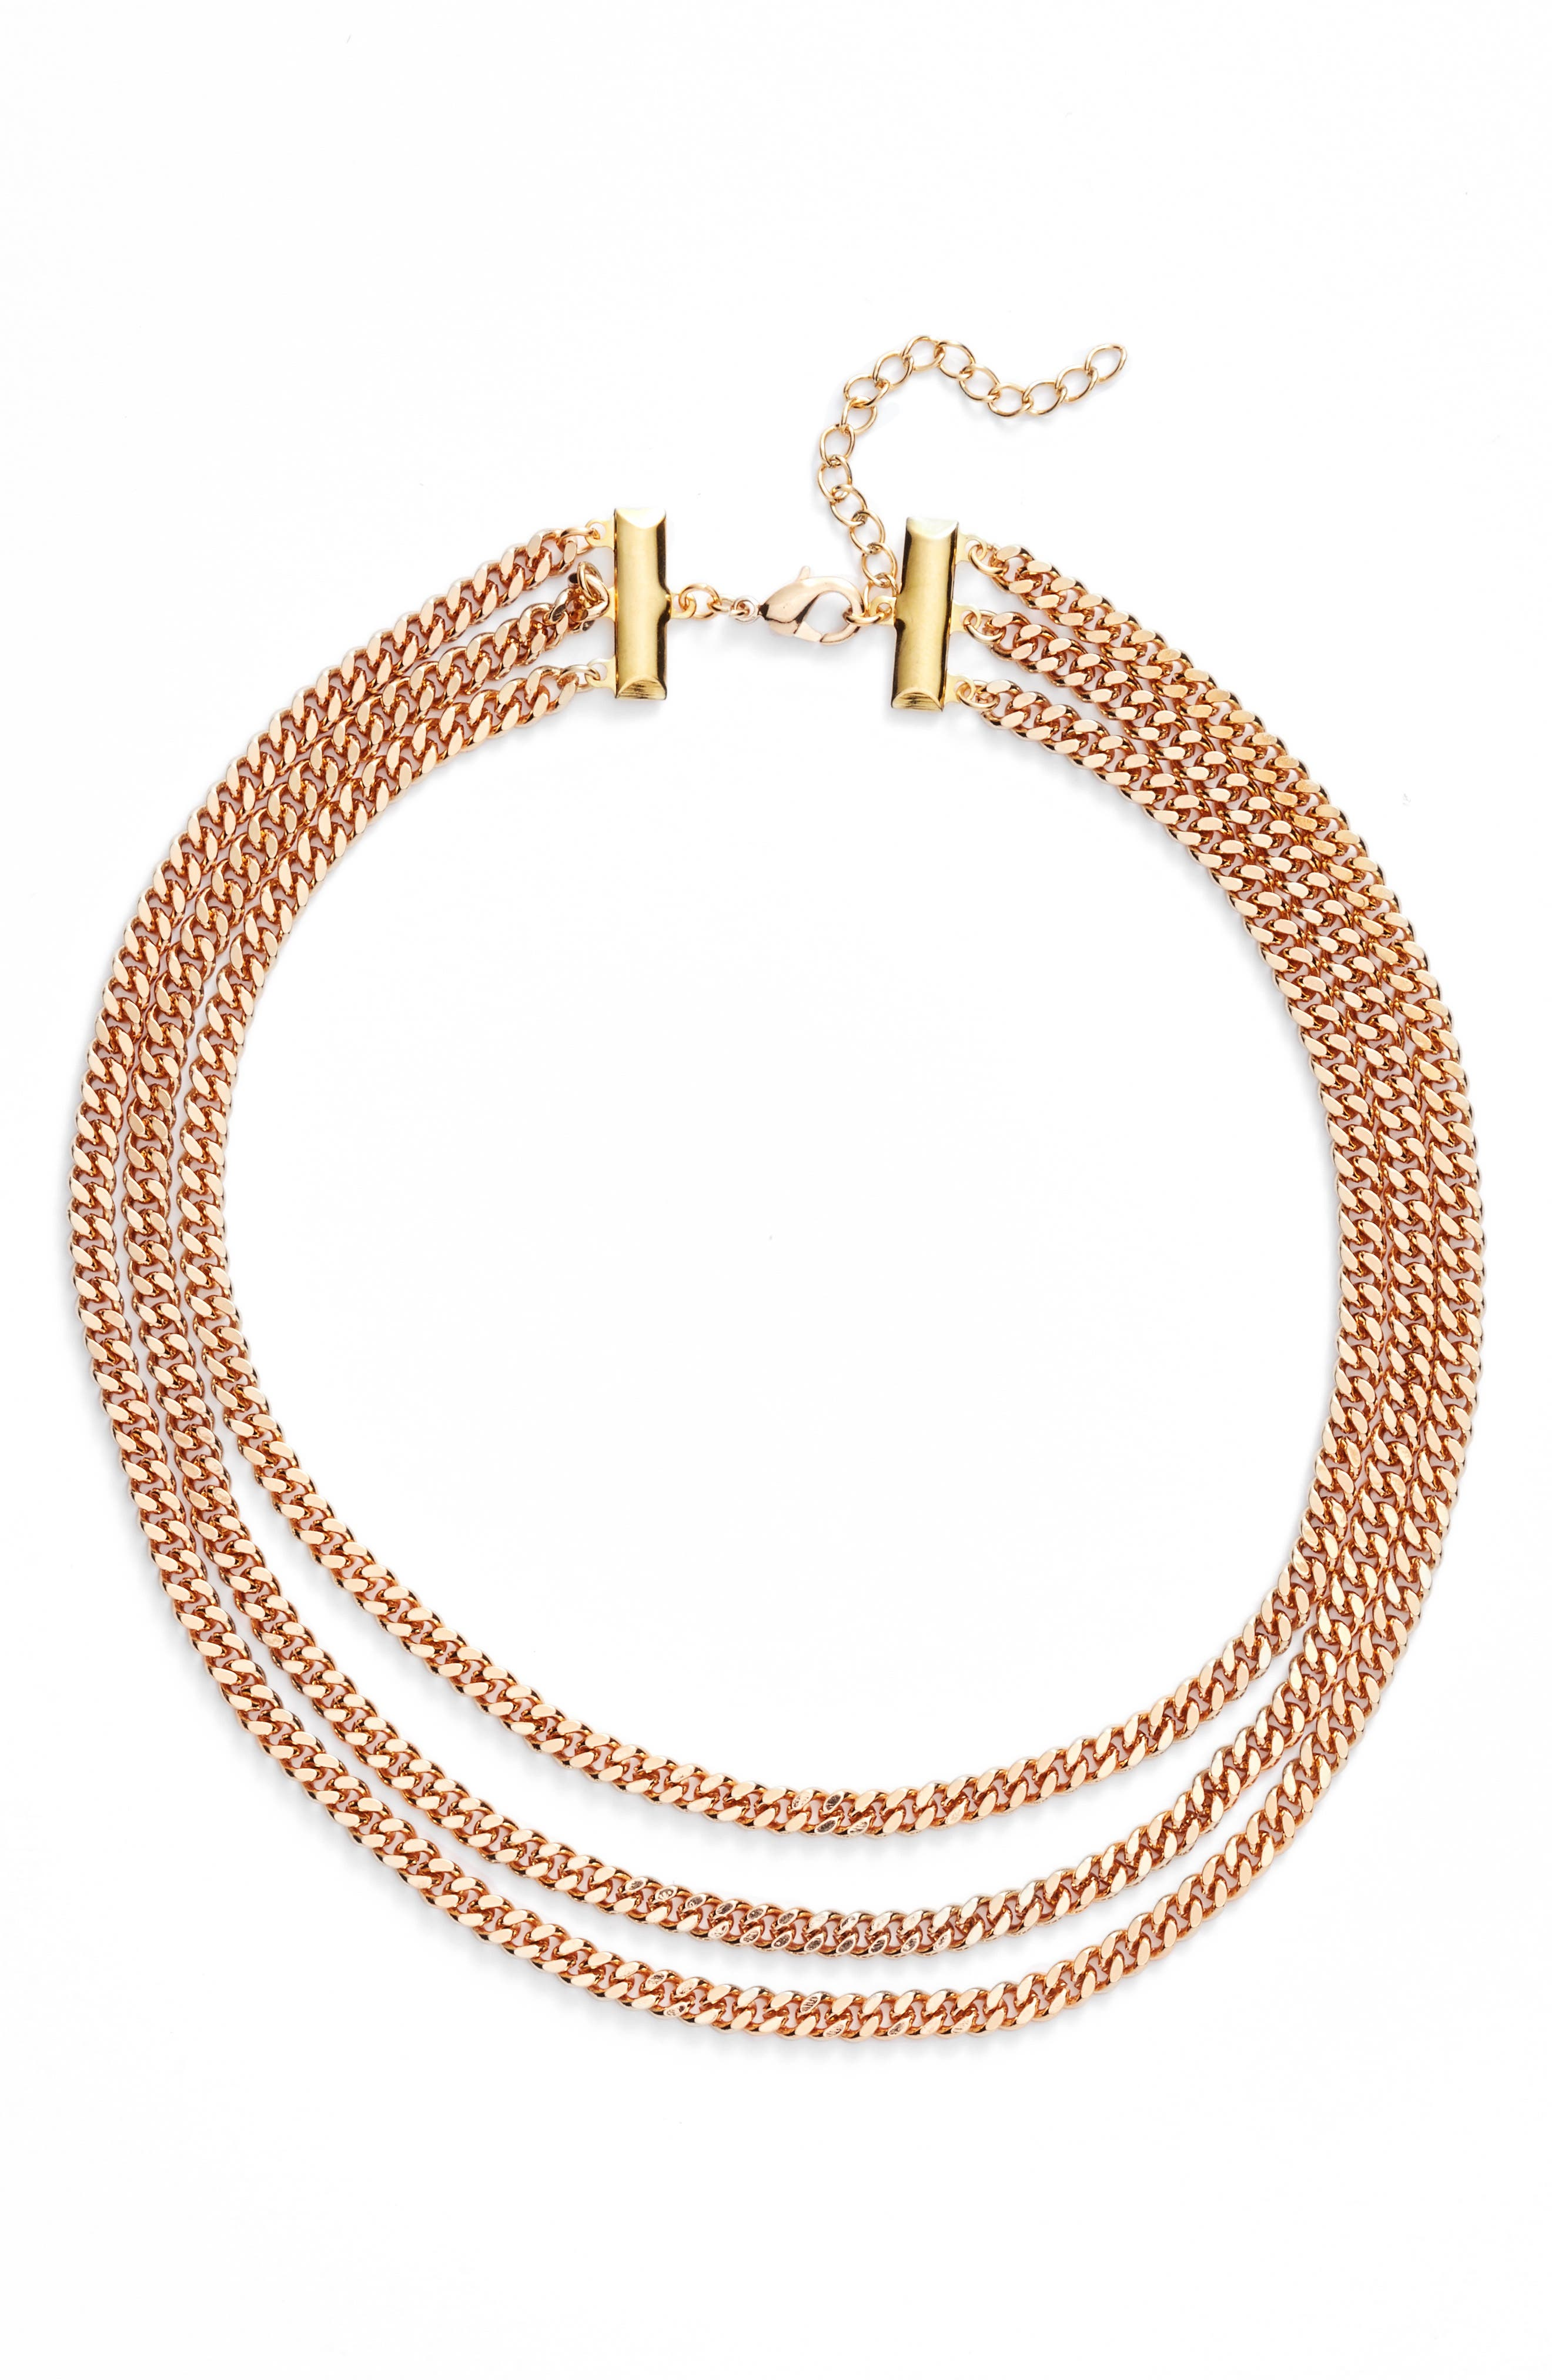 Alternate Image 1 Selected - FRASIER STERLING Layered Curb Chain Choker